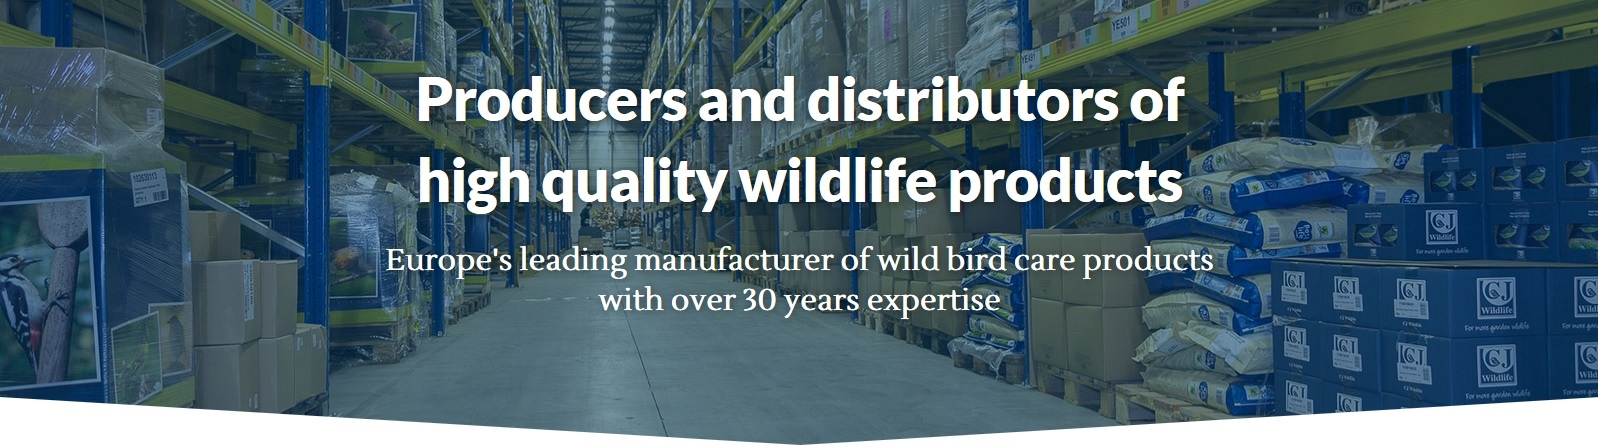 Europe's leading manufacturer of wild bird care products with over 30 years expertise